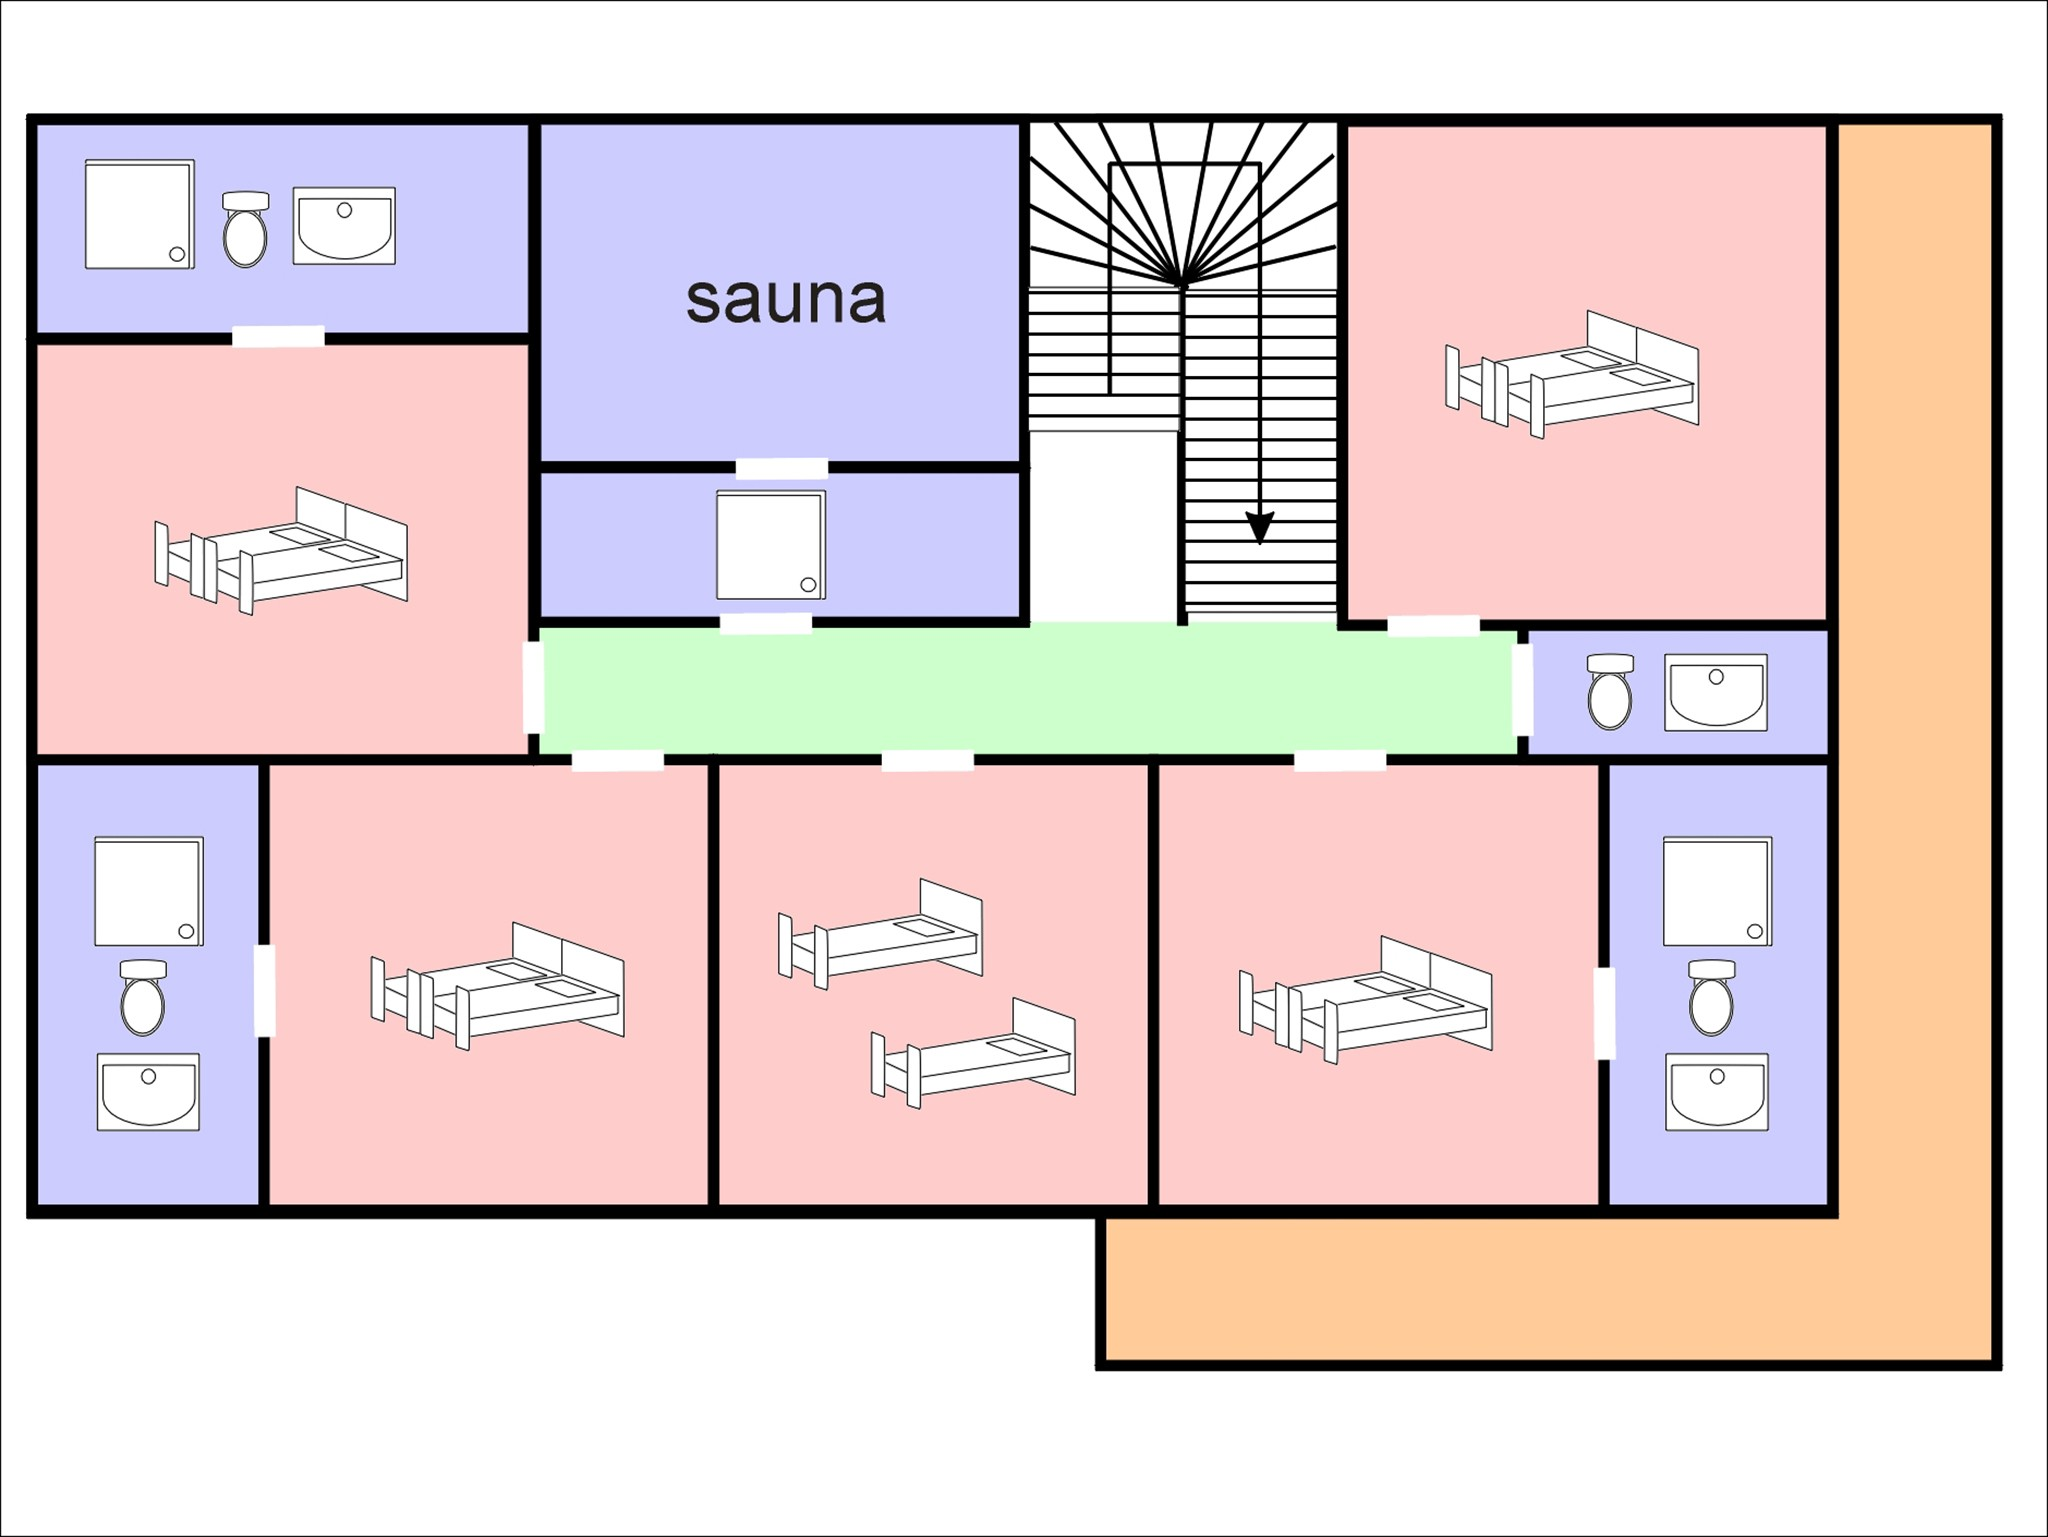 Chalet Maria - floor plan - level 1